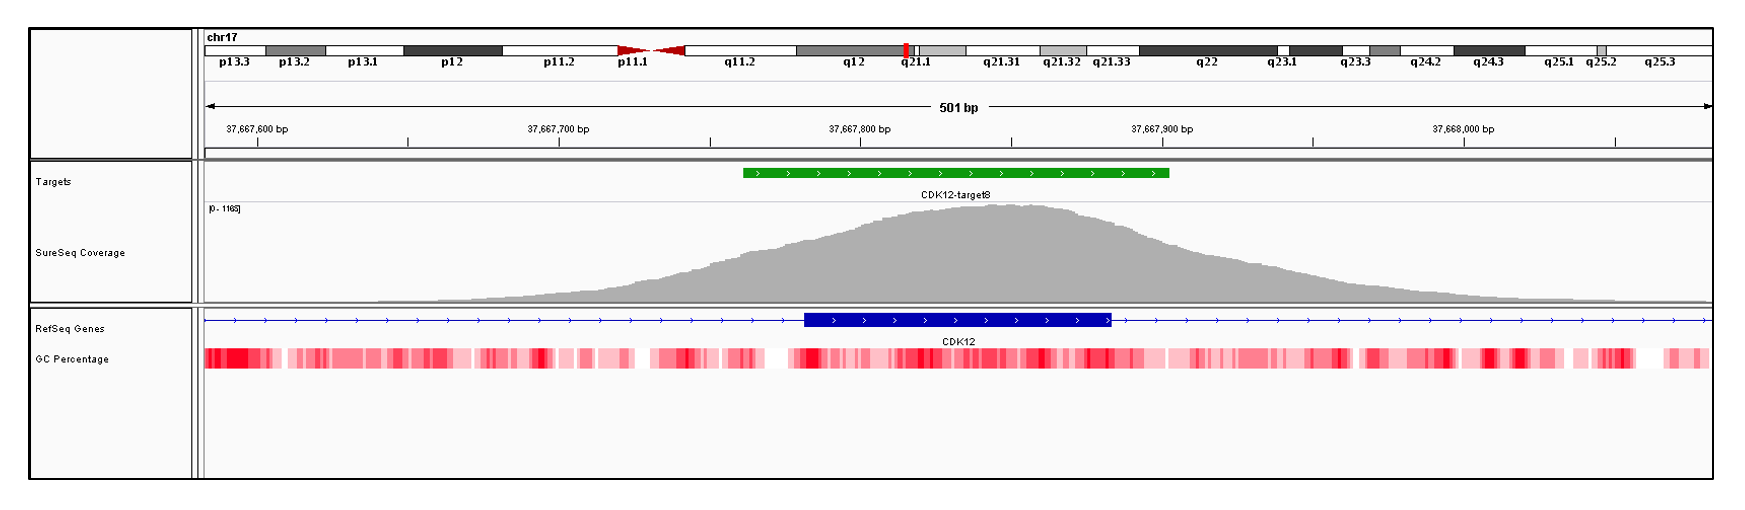 CDK12 Exon 8 (hg19 chr17:37667782-37667883). Depth of coverage per base (grey). Targeted region (green). Gene coding region as defined by RefSeq (blue). GC percentage (red). Image